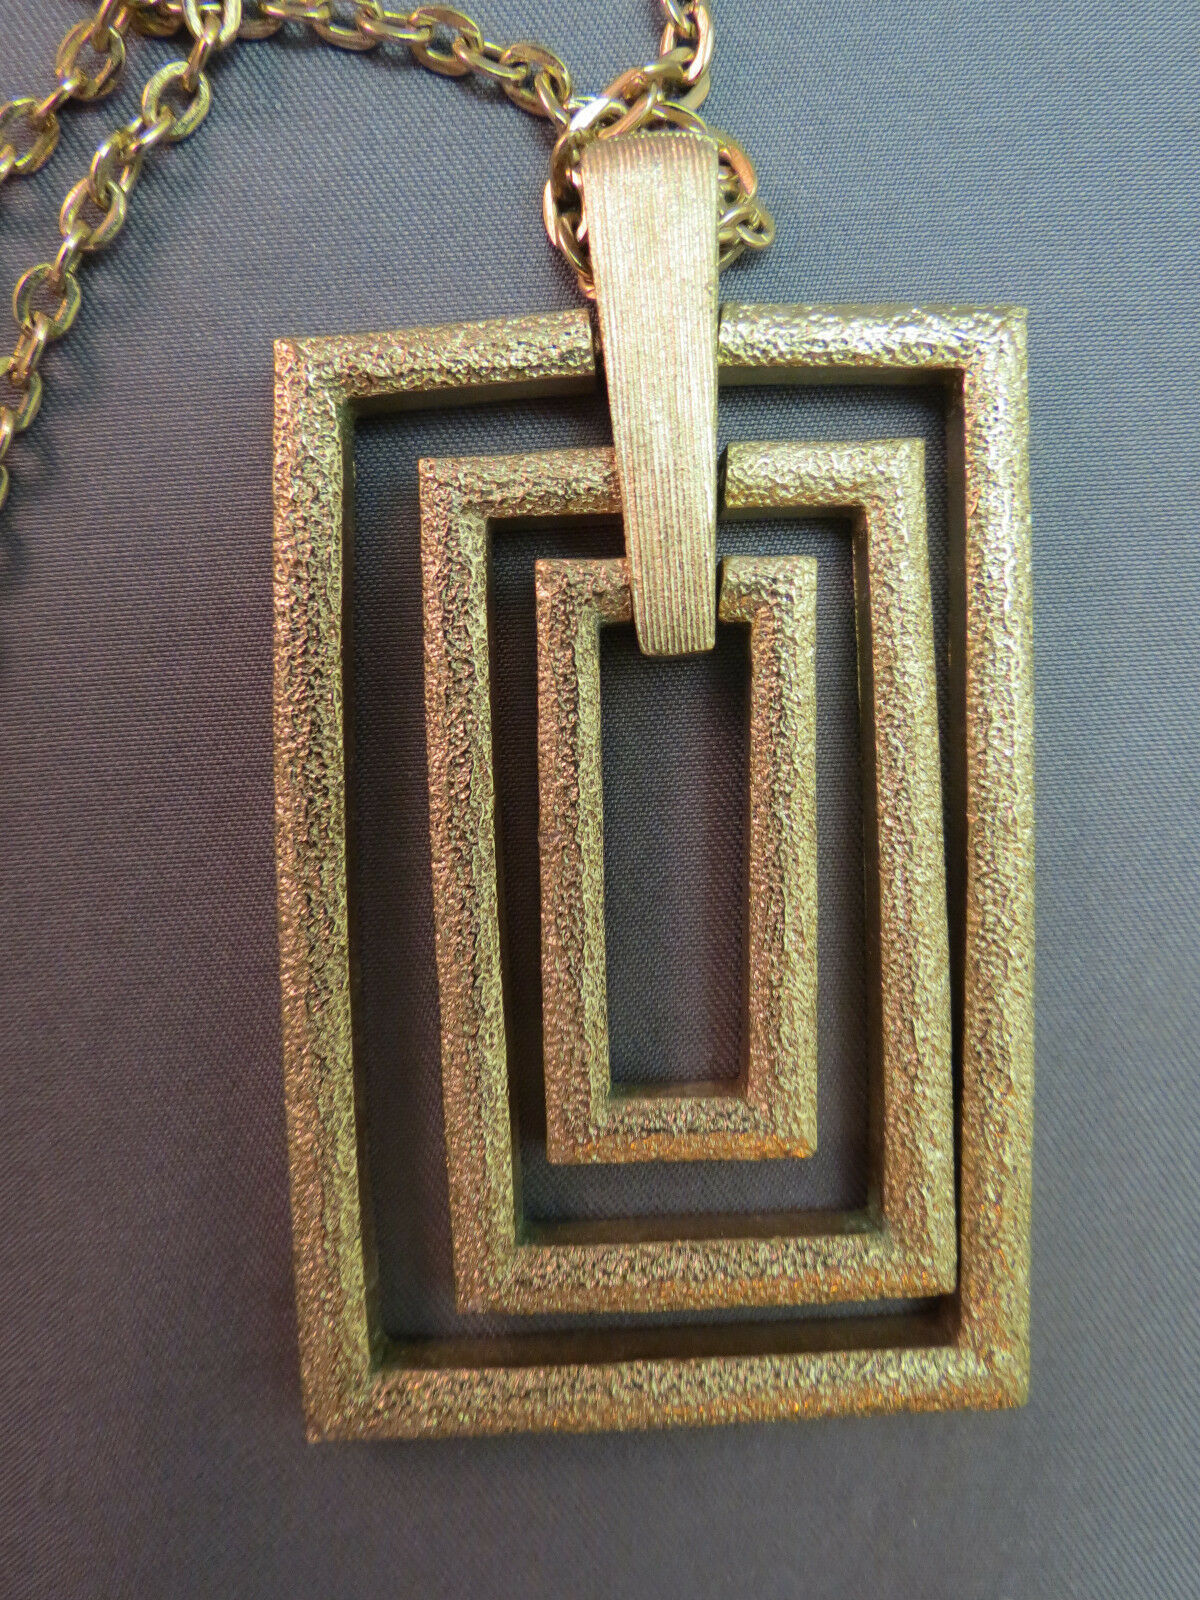 Couture Sarah Coventry Pendant Necklace Chain Rectangular Gold Plate Texture VTG